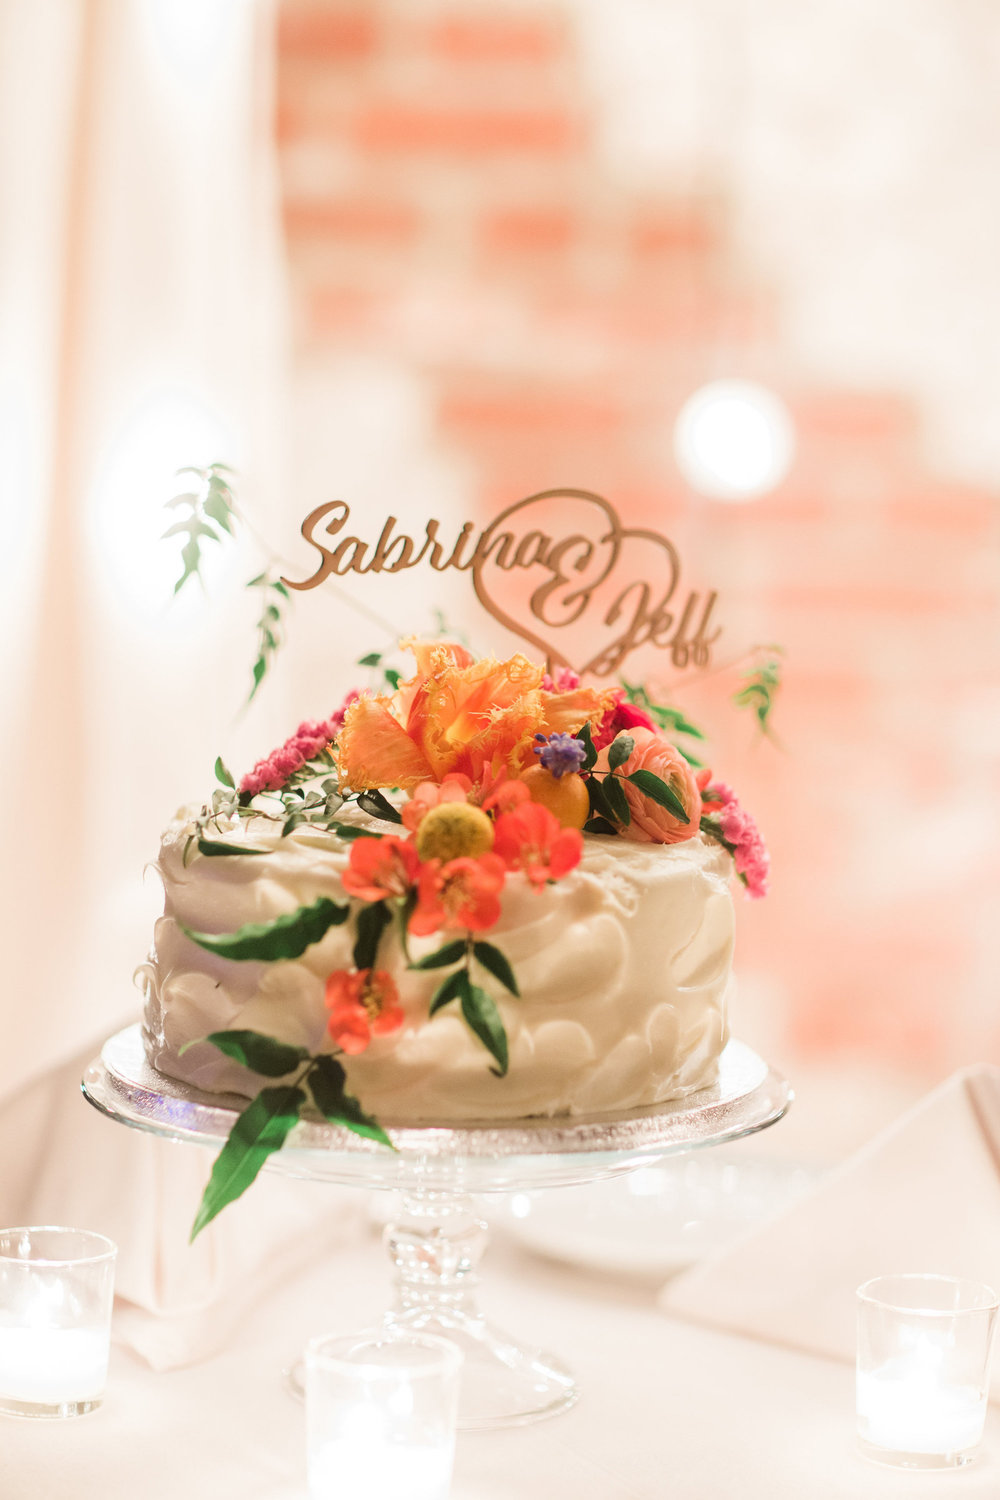 Small Wedding Cake & Custom Cake Topper | Colorful & Sweet Brooklyn Wedding | The Green Building